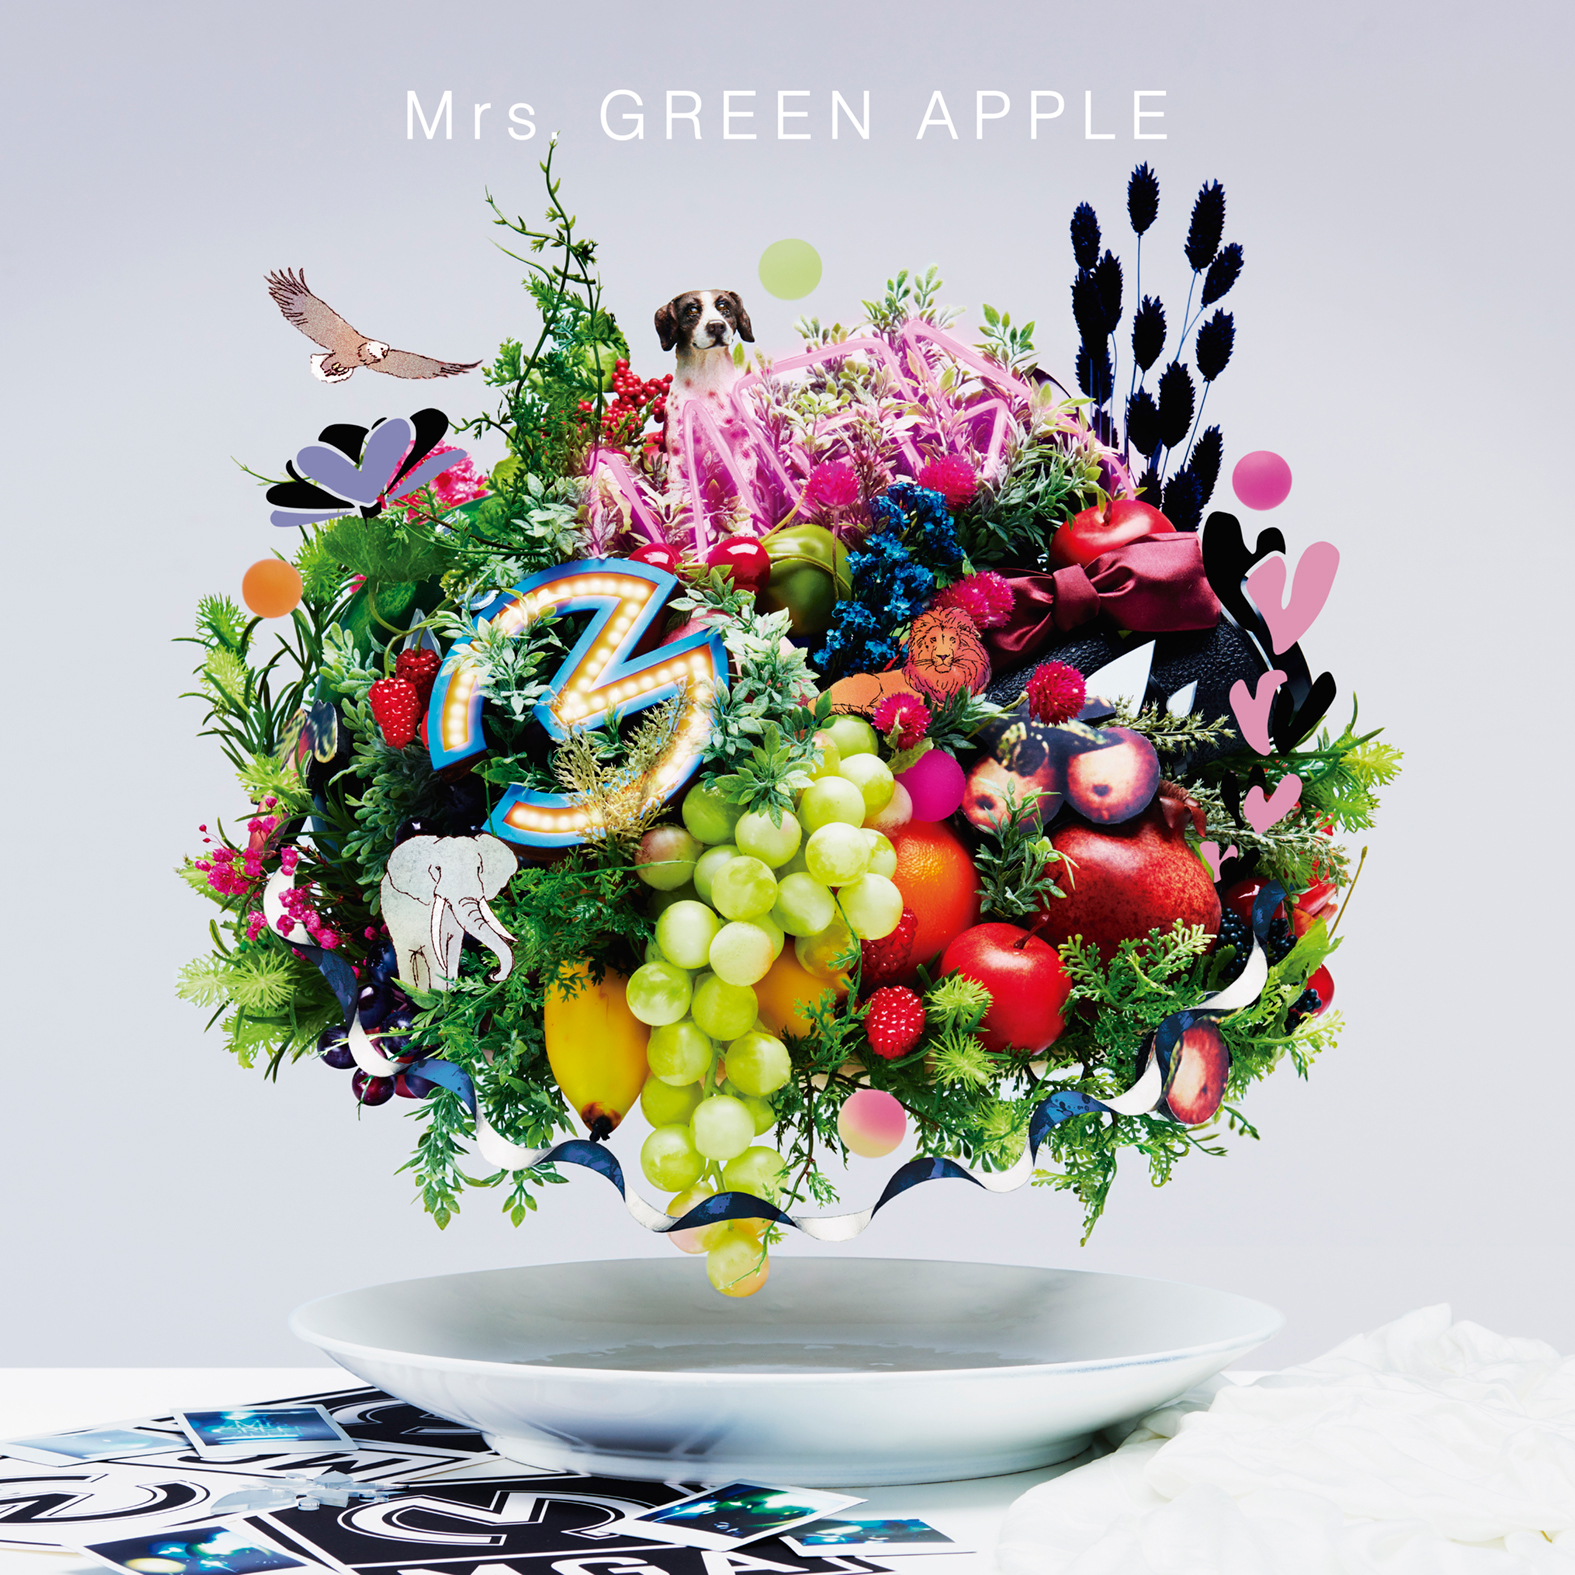 Mrs. GREEN APPLE BEST ALBUM 『5』初回限定盤/通常盤